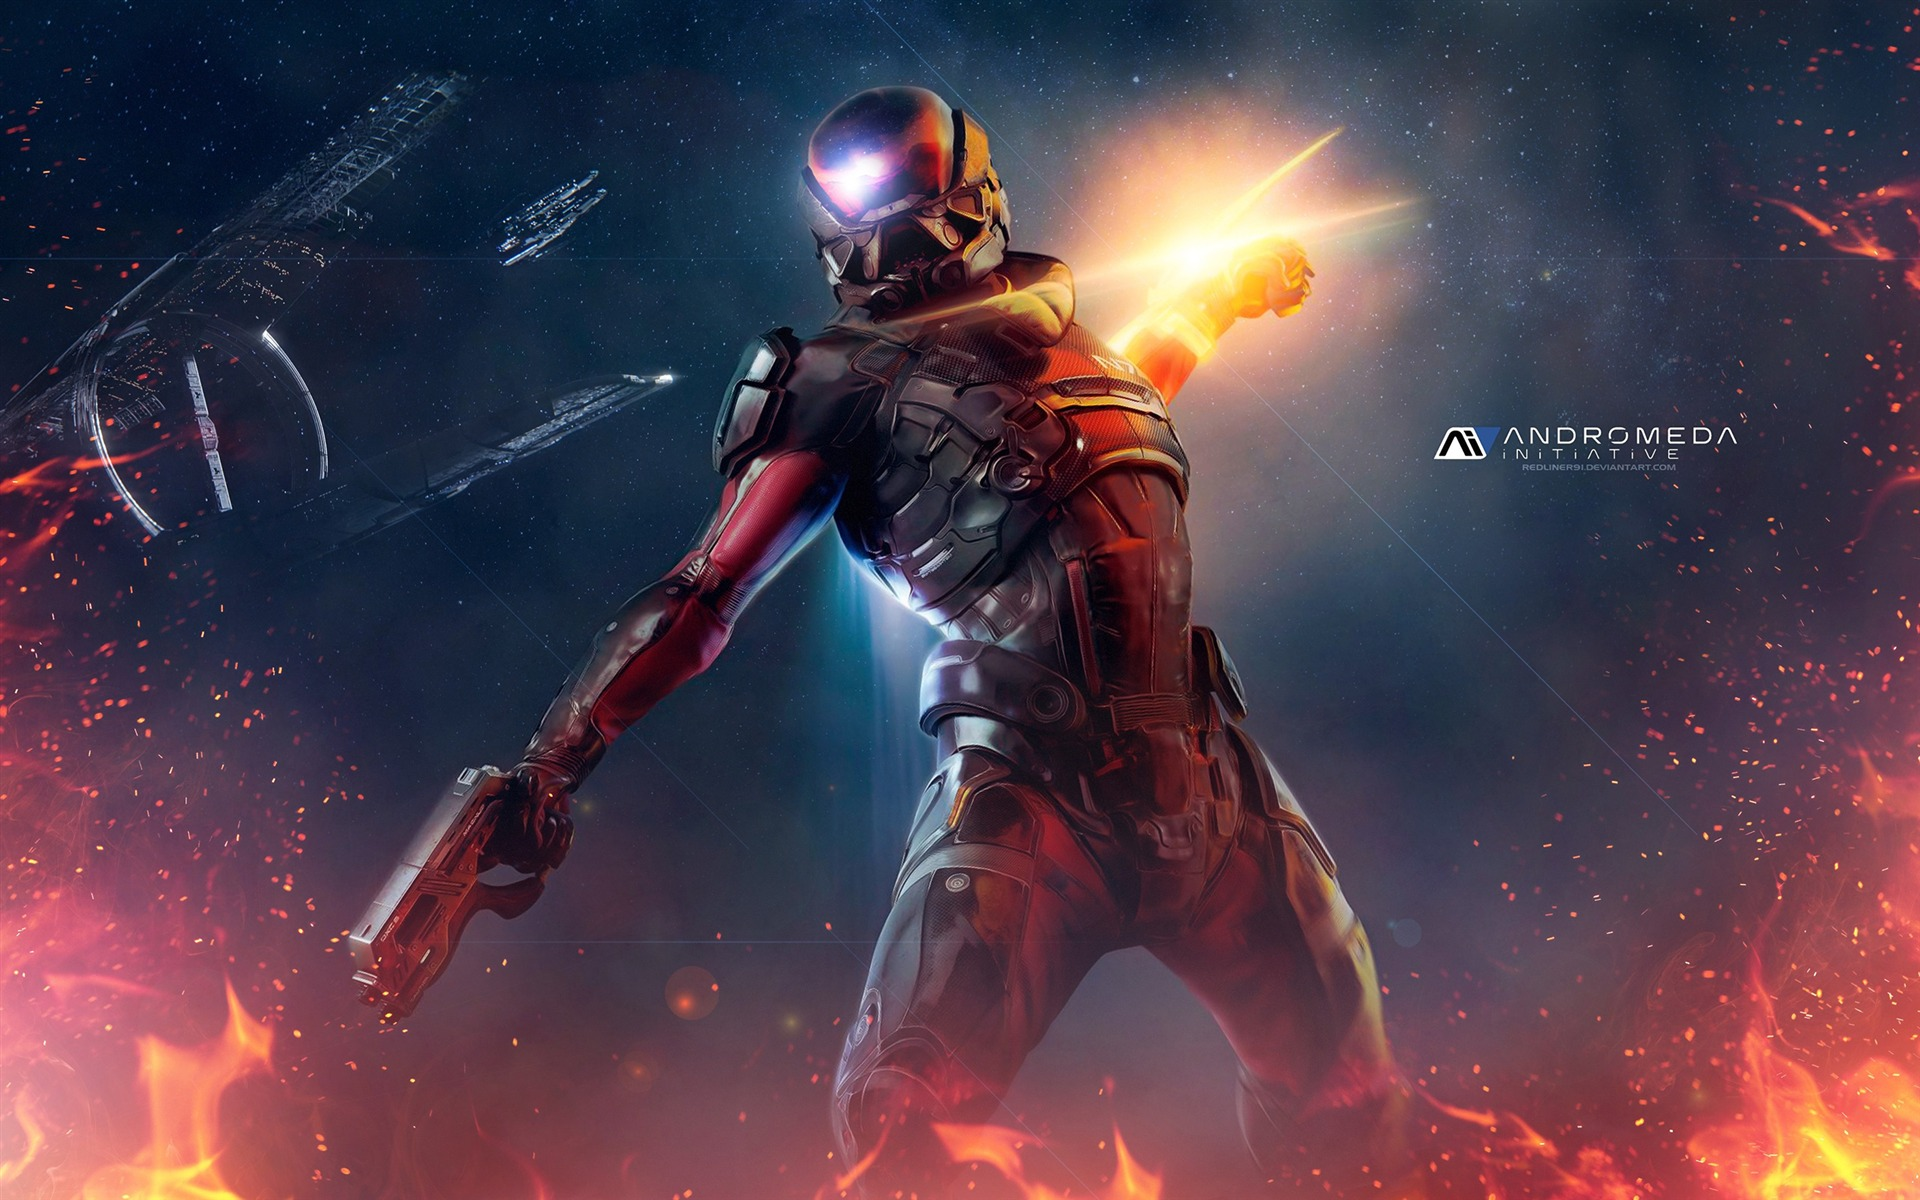 Mass Effect Andromeda 2017 Game Wallpaper 10 - 1920x1200 wallpaper download